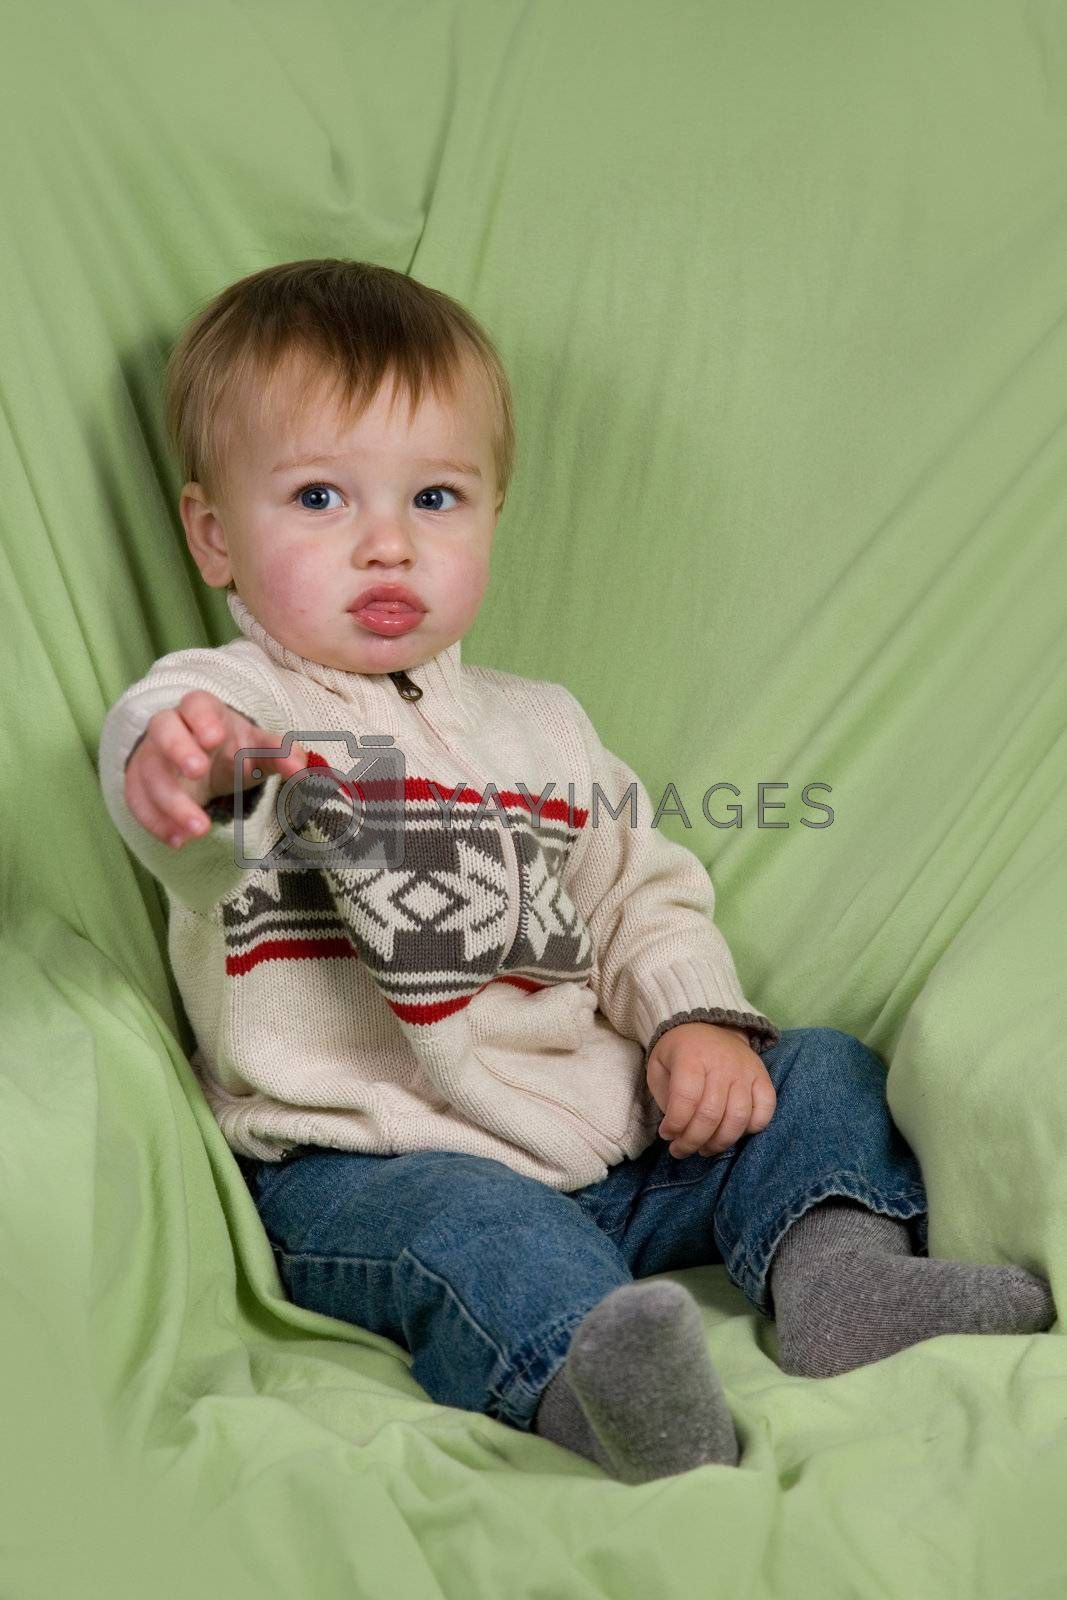 A portrait of a cute toddler dressed in winter clothes.